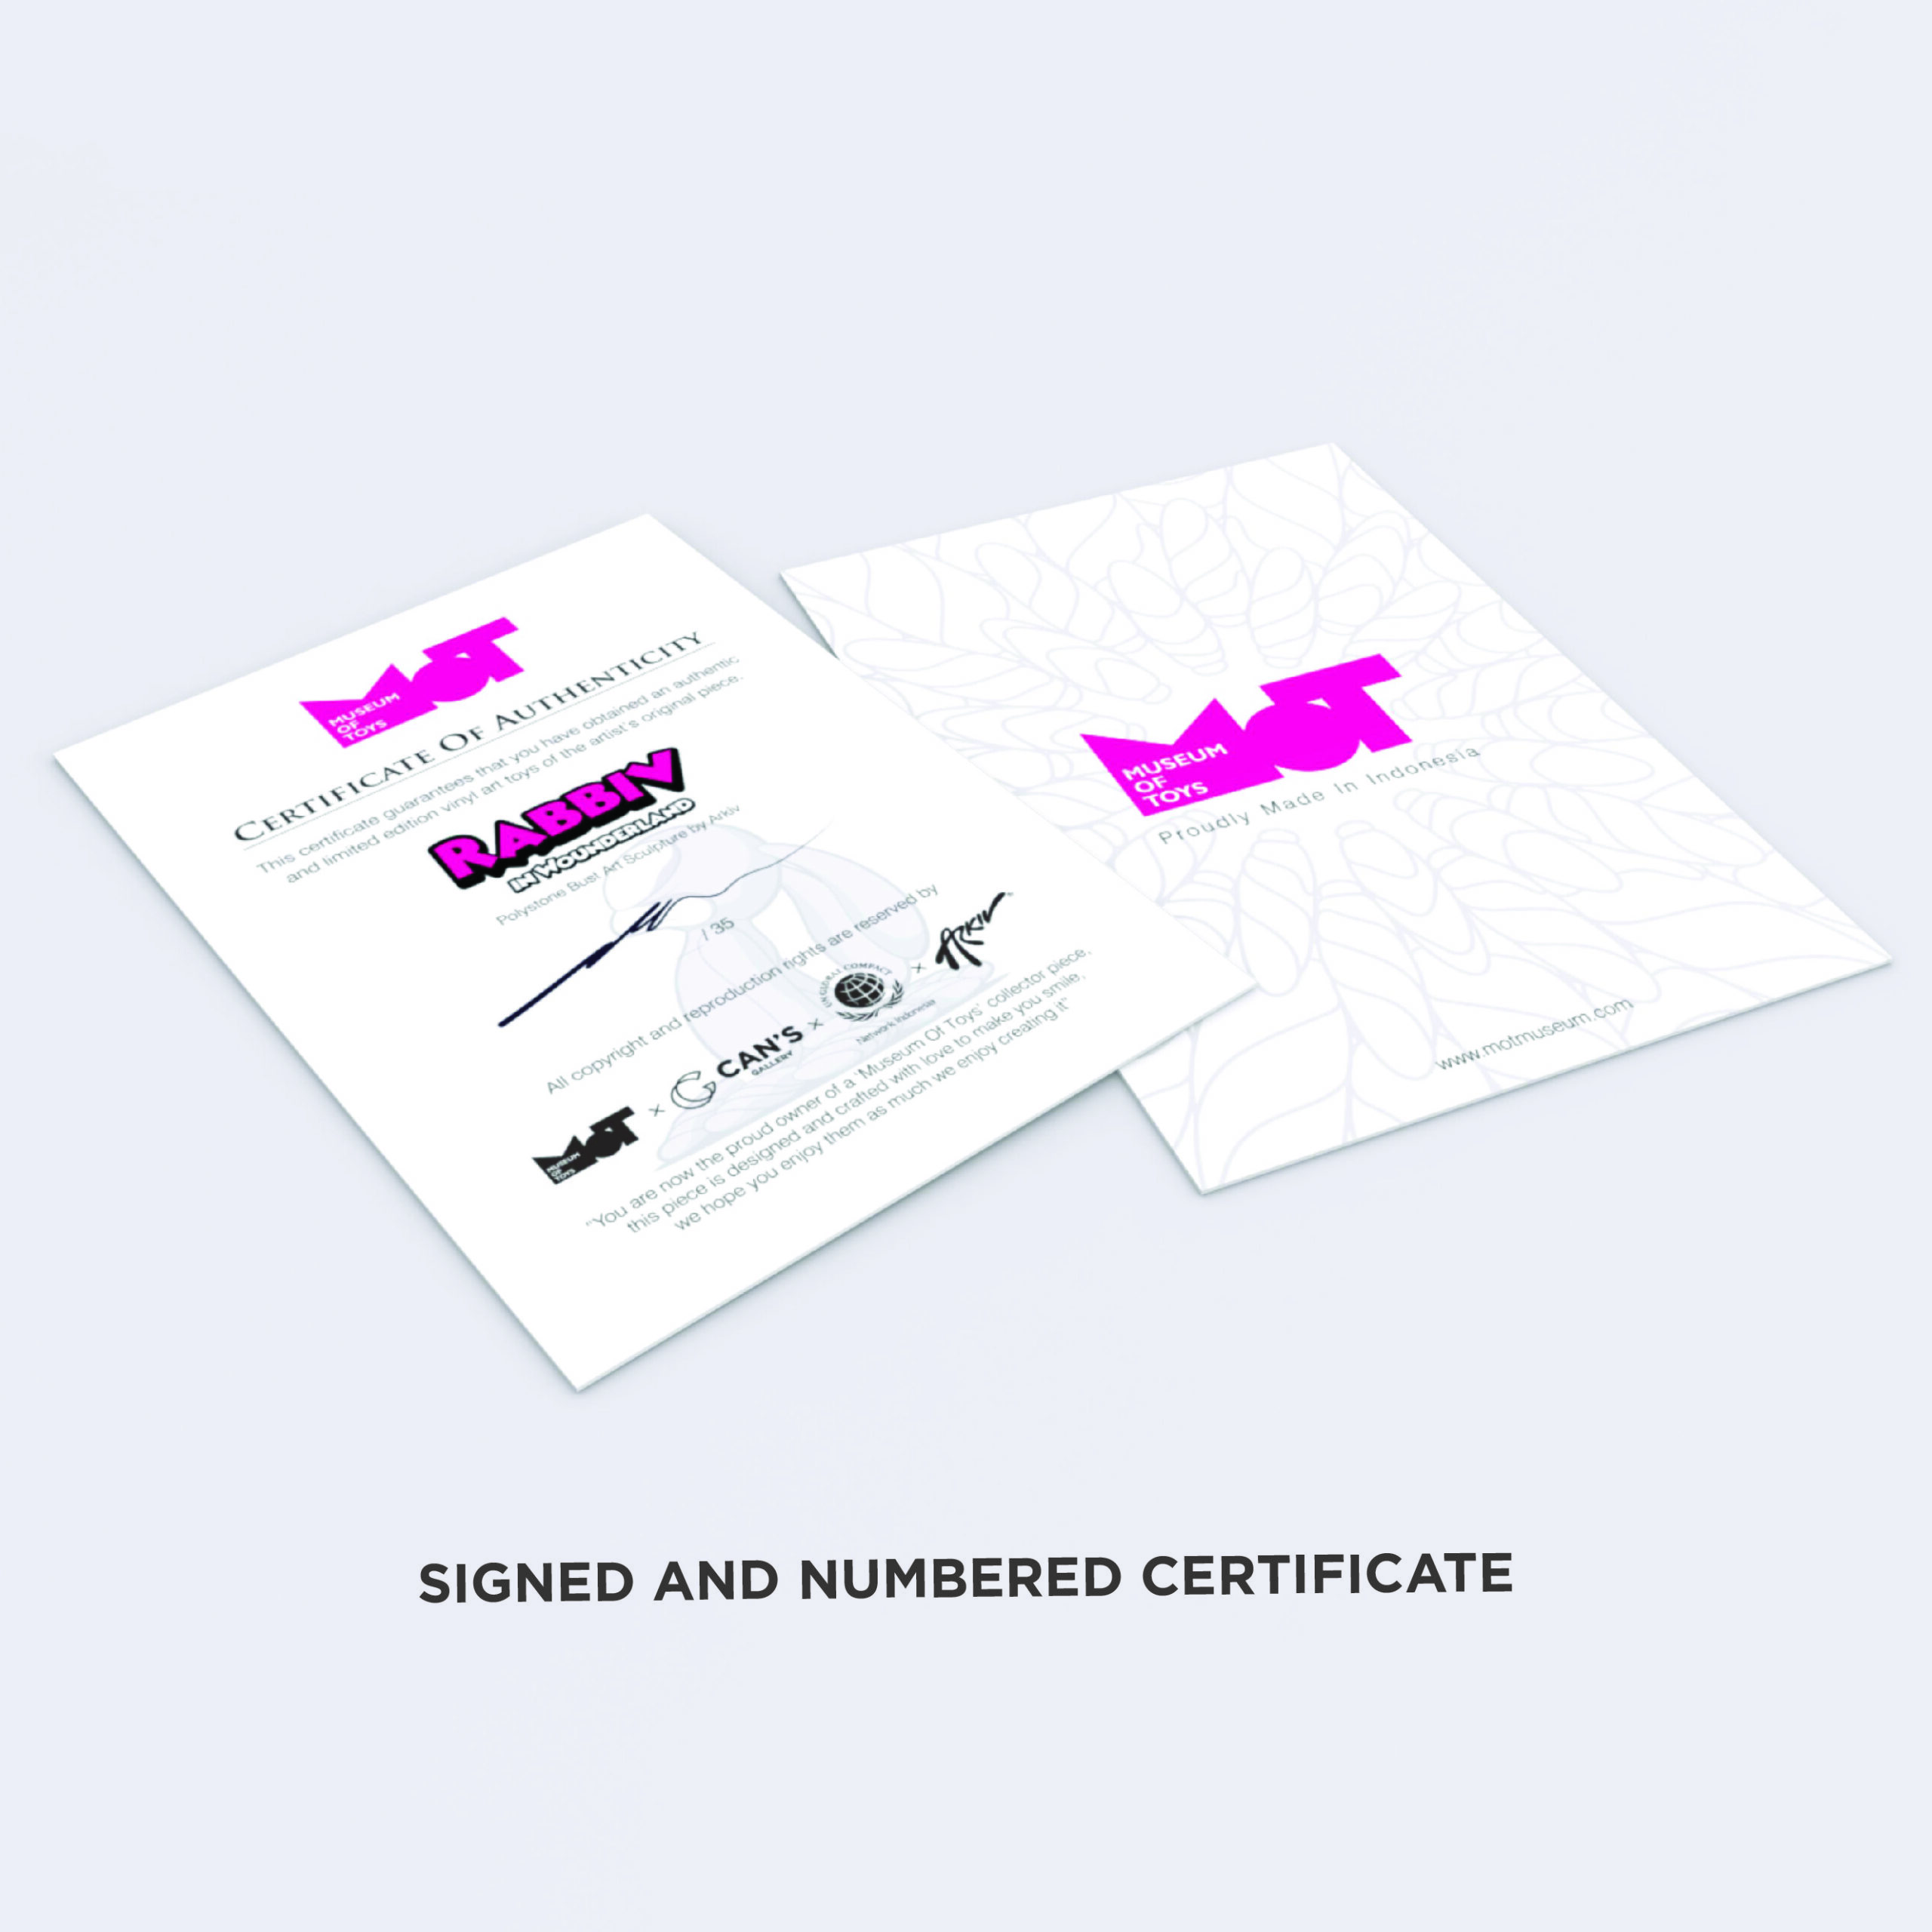 Rabbiv in Wounderland Limited Edition Certificate